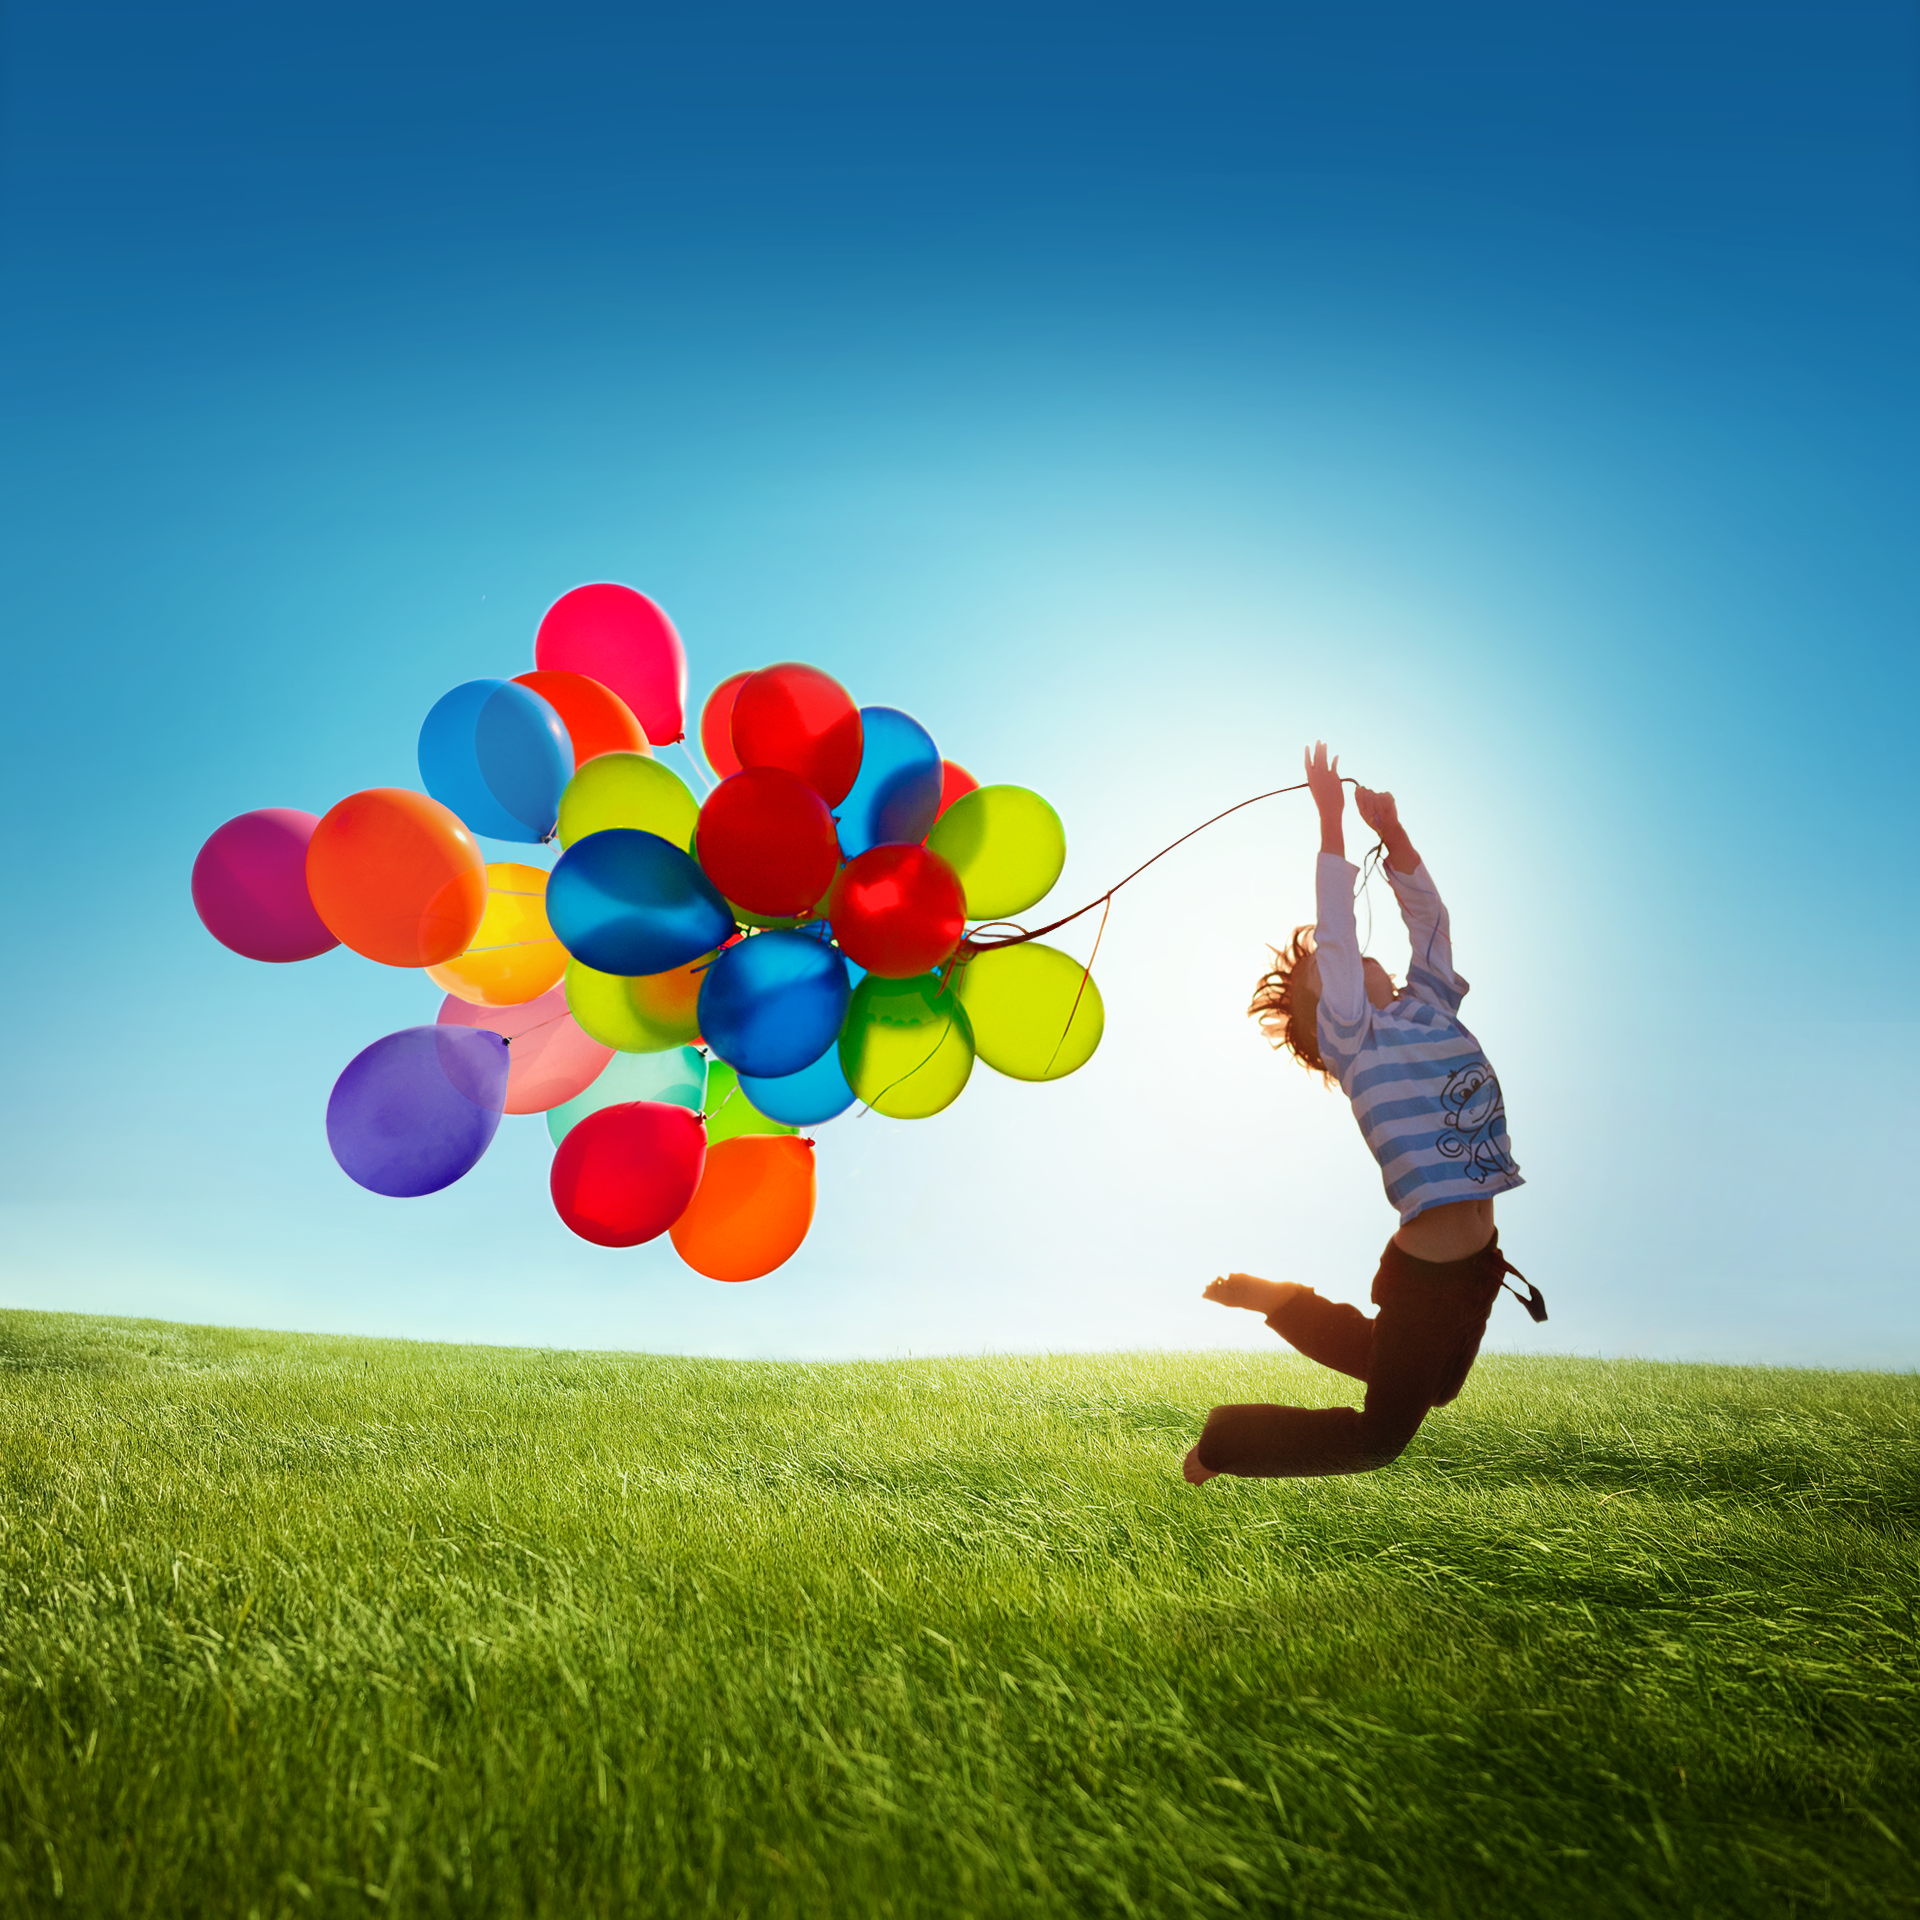 samsung-galaxy-s4-kid-playing-with-balloons